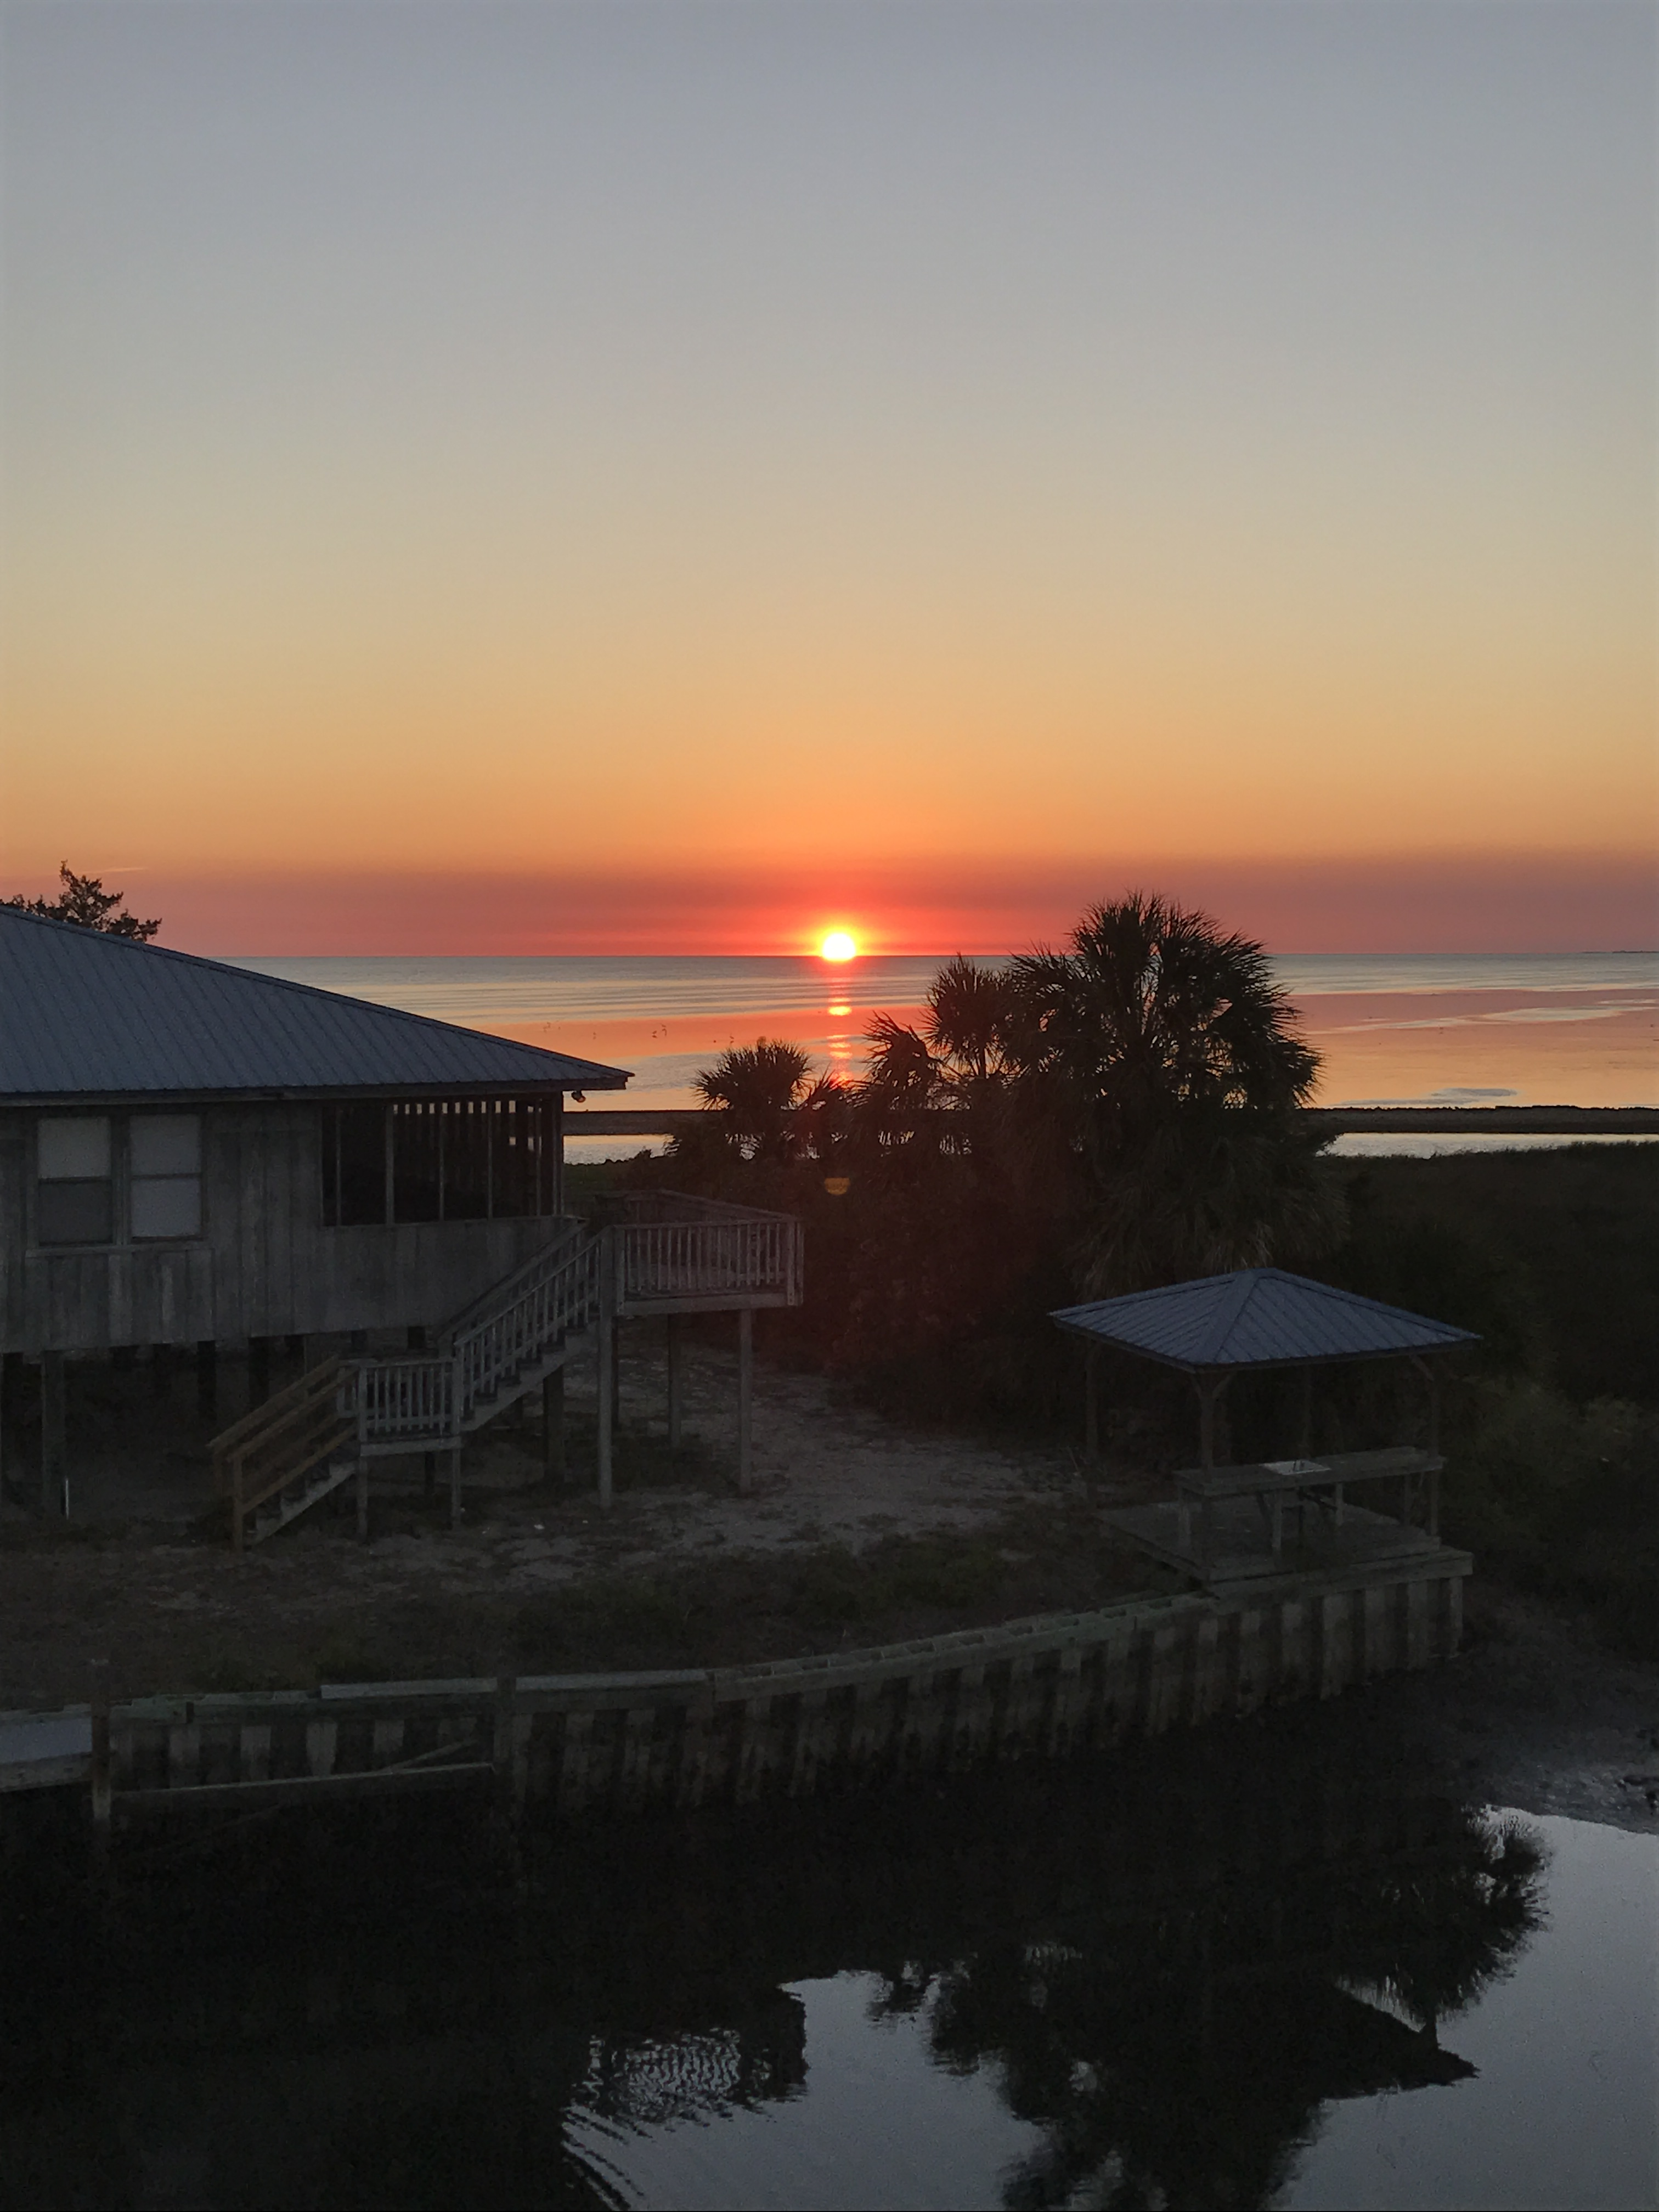 Sunset on the Gulf of Mexico from porch